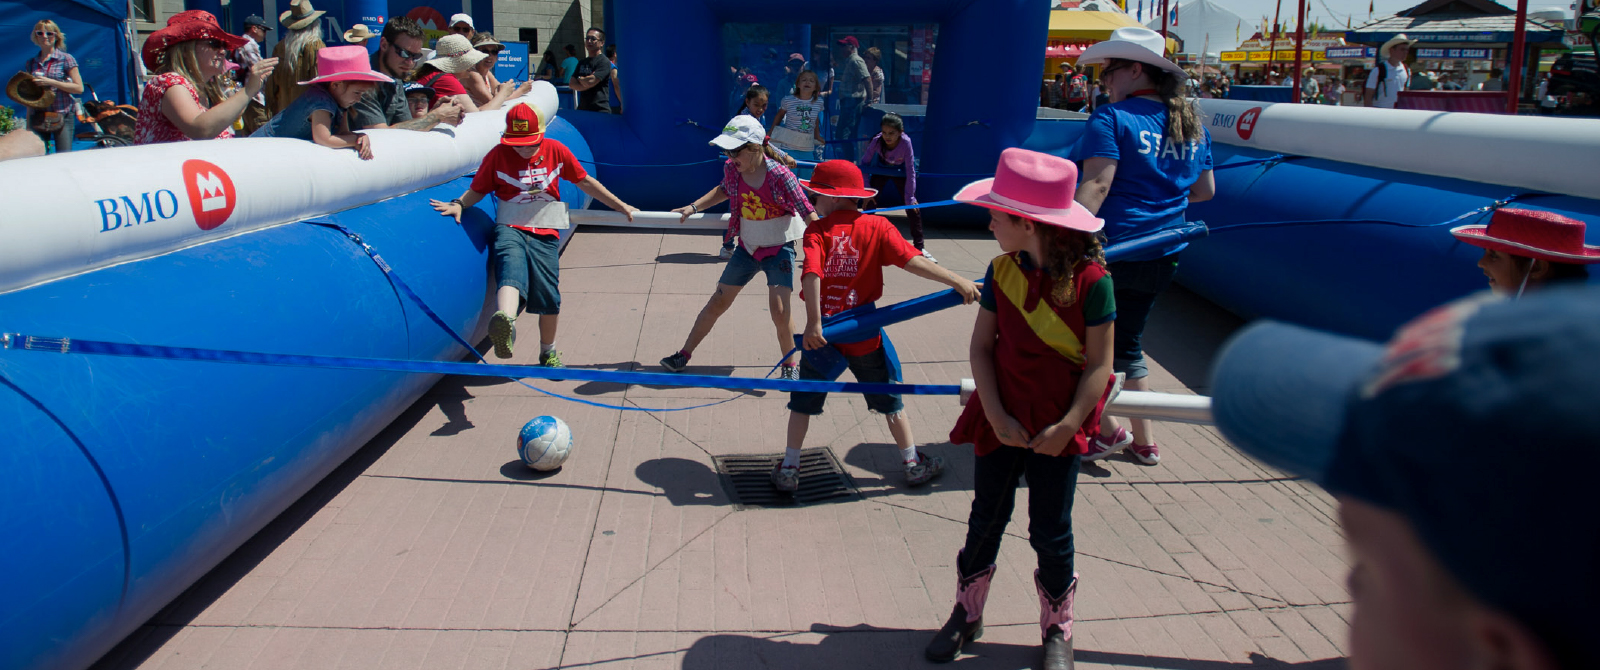 Bmo Kids Zone Calgary Stampede July 3 12 2020